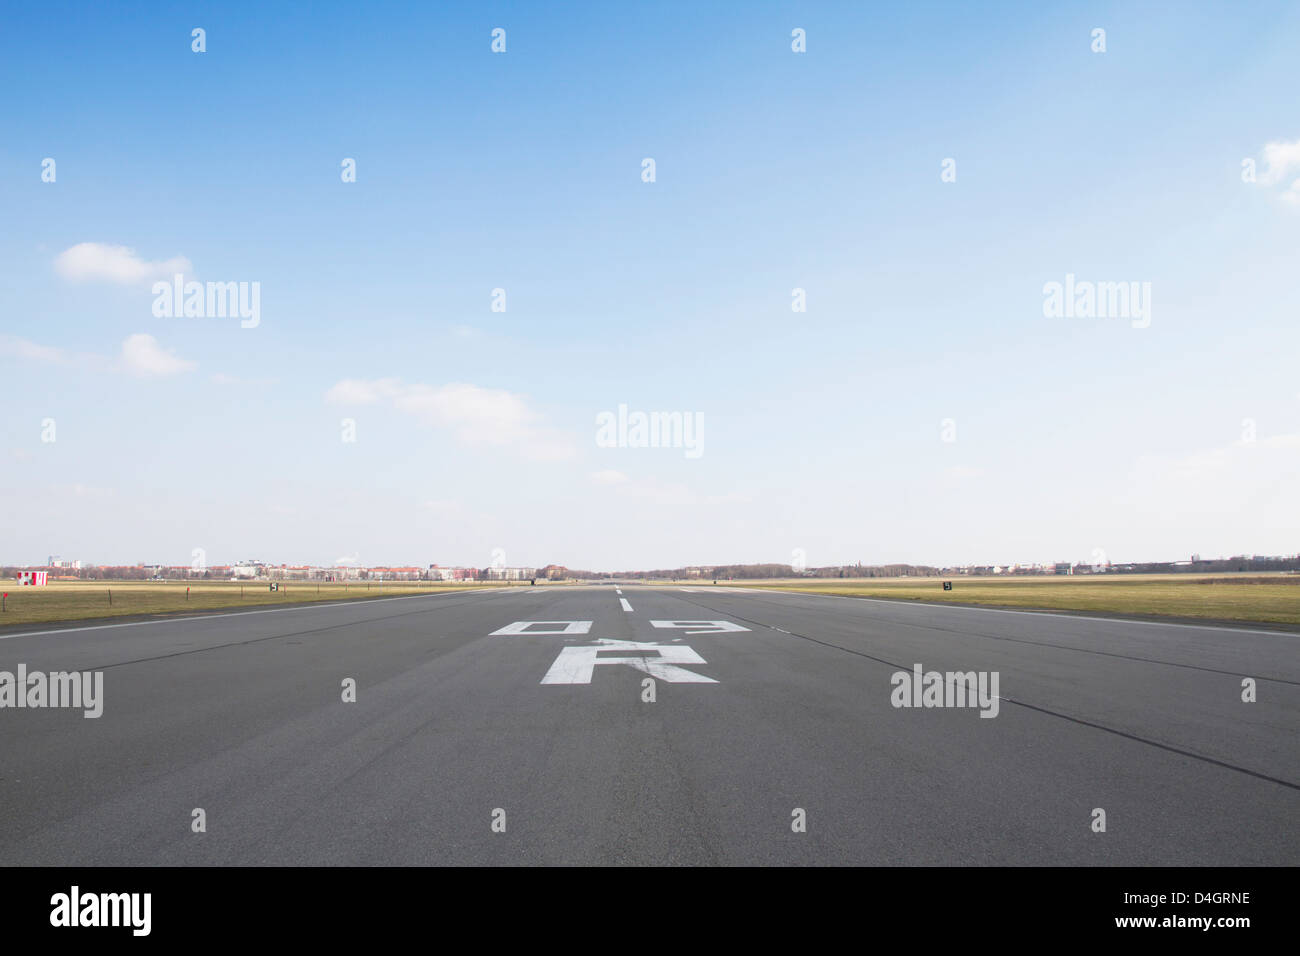 Perspective view of an airport runway - Stock Image